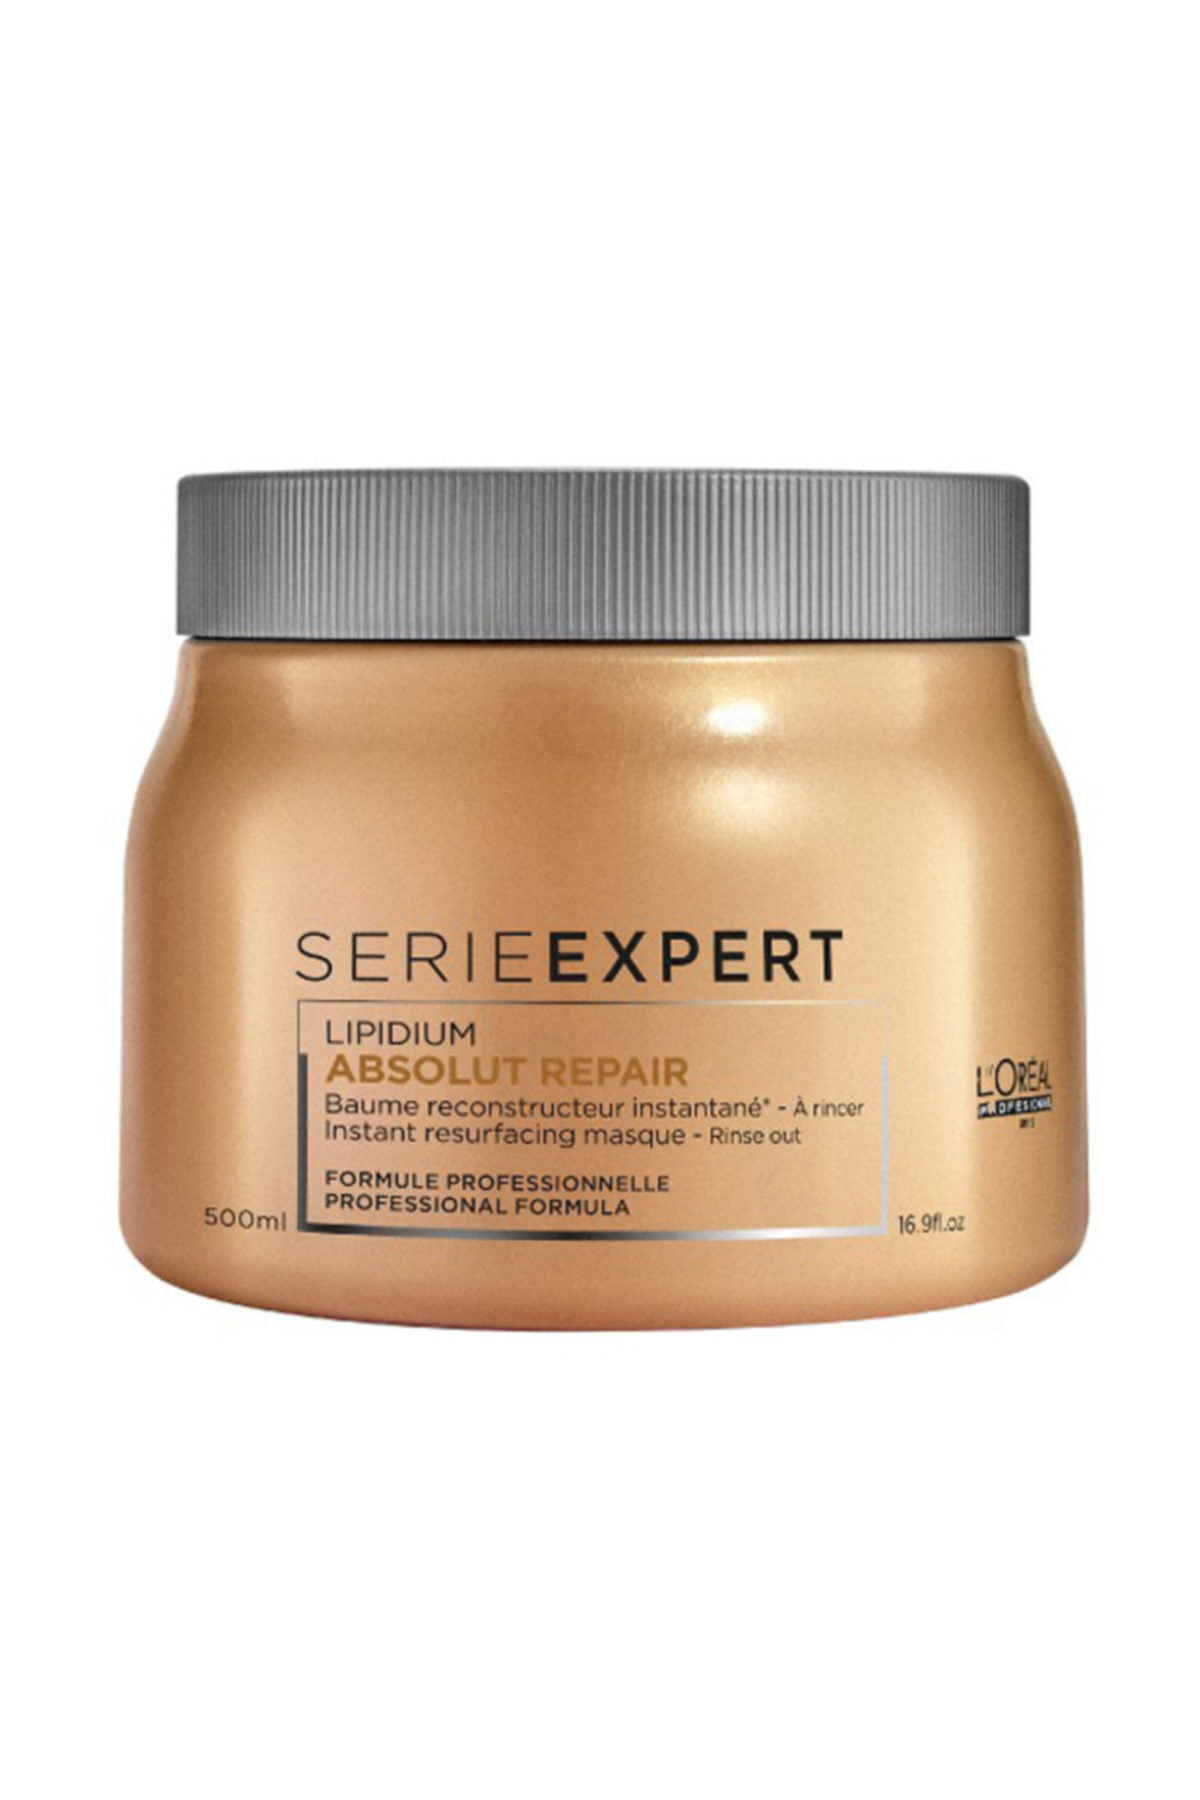 L'oreal Professionnel Serieexpert Absolut Repair Gold Masque Saç Maskesi  500 ml 3474636481781 1